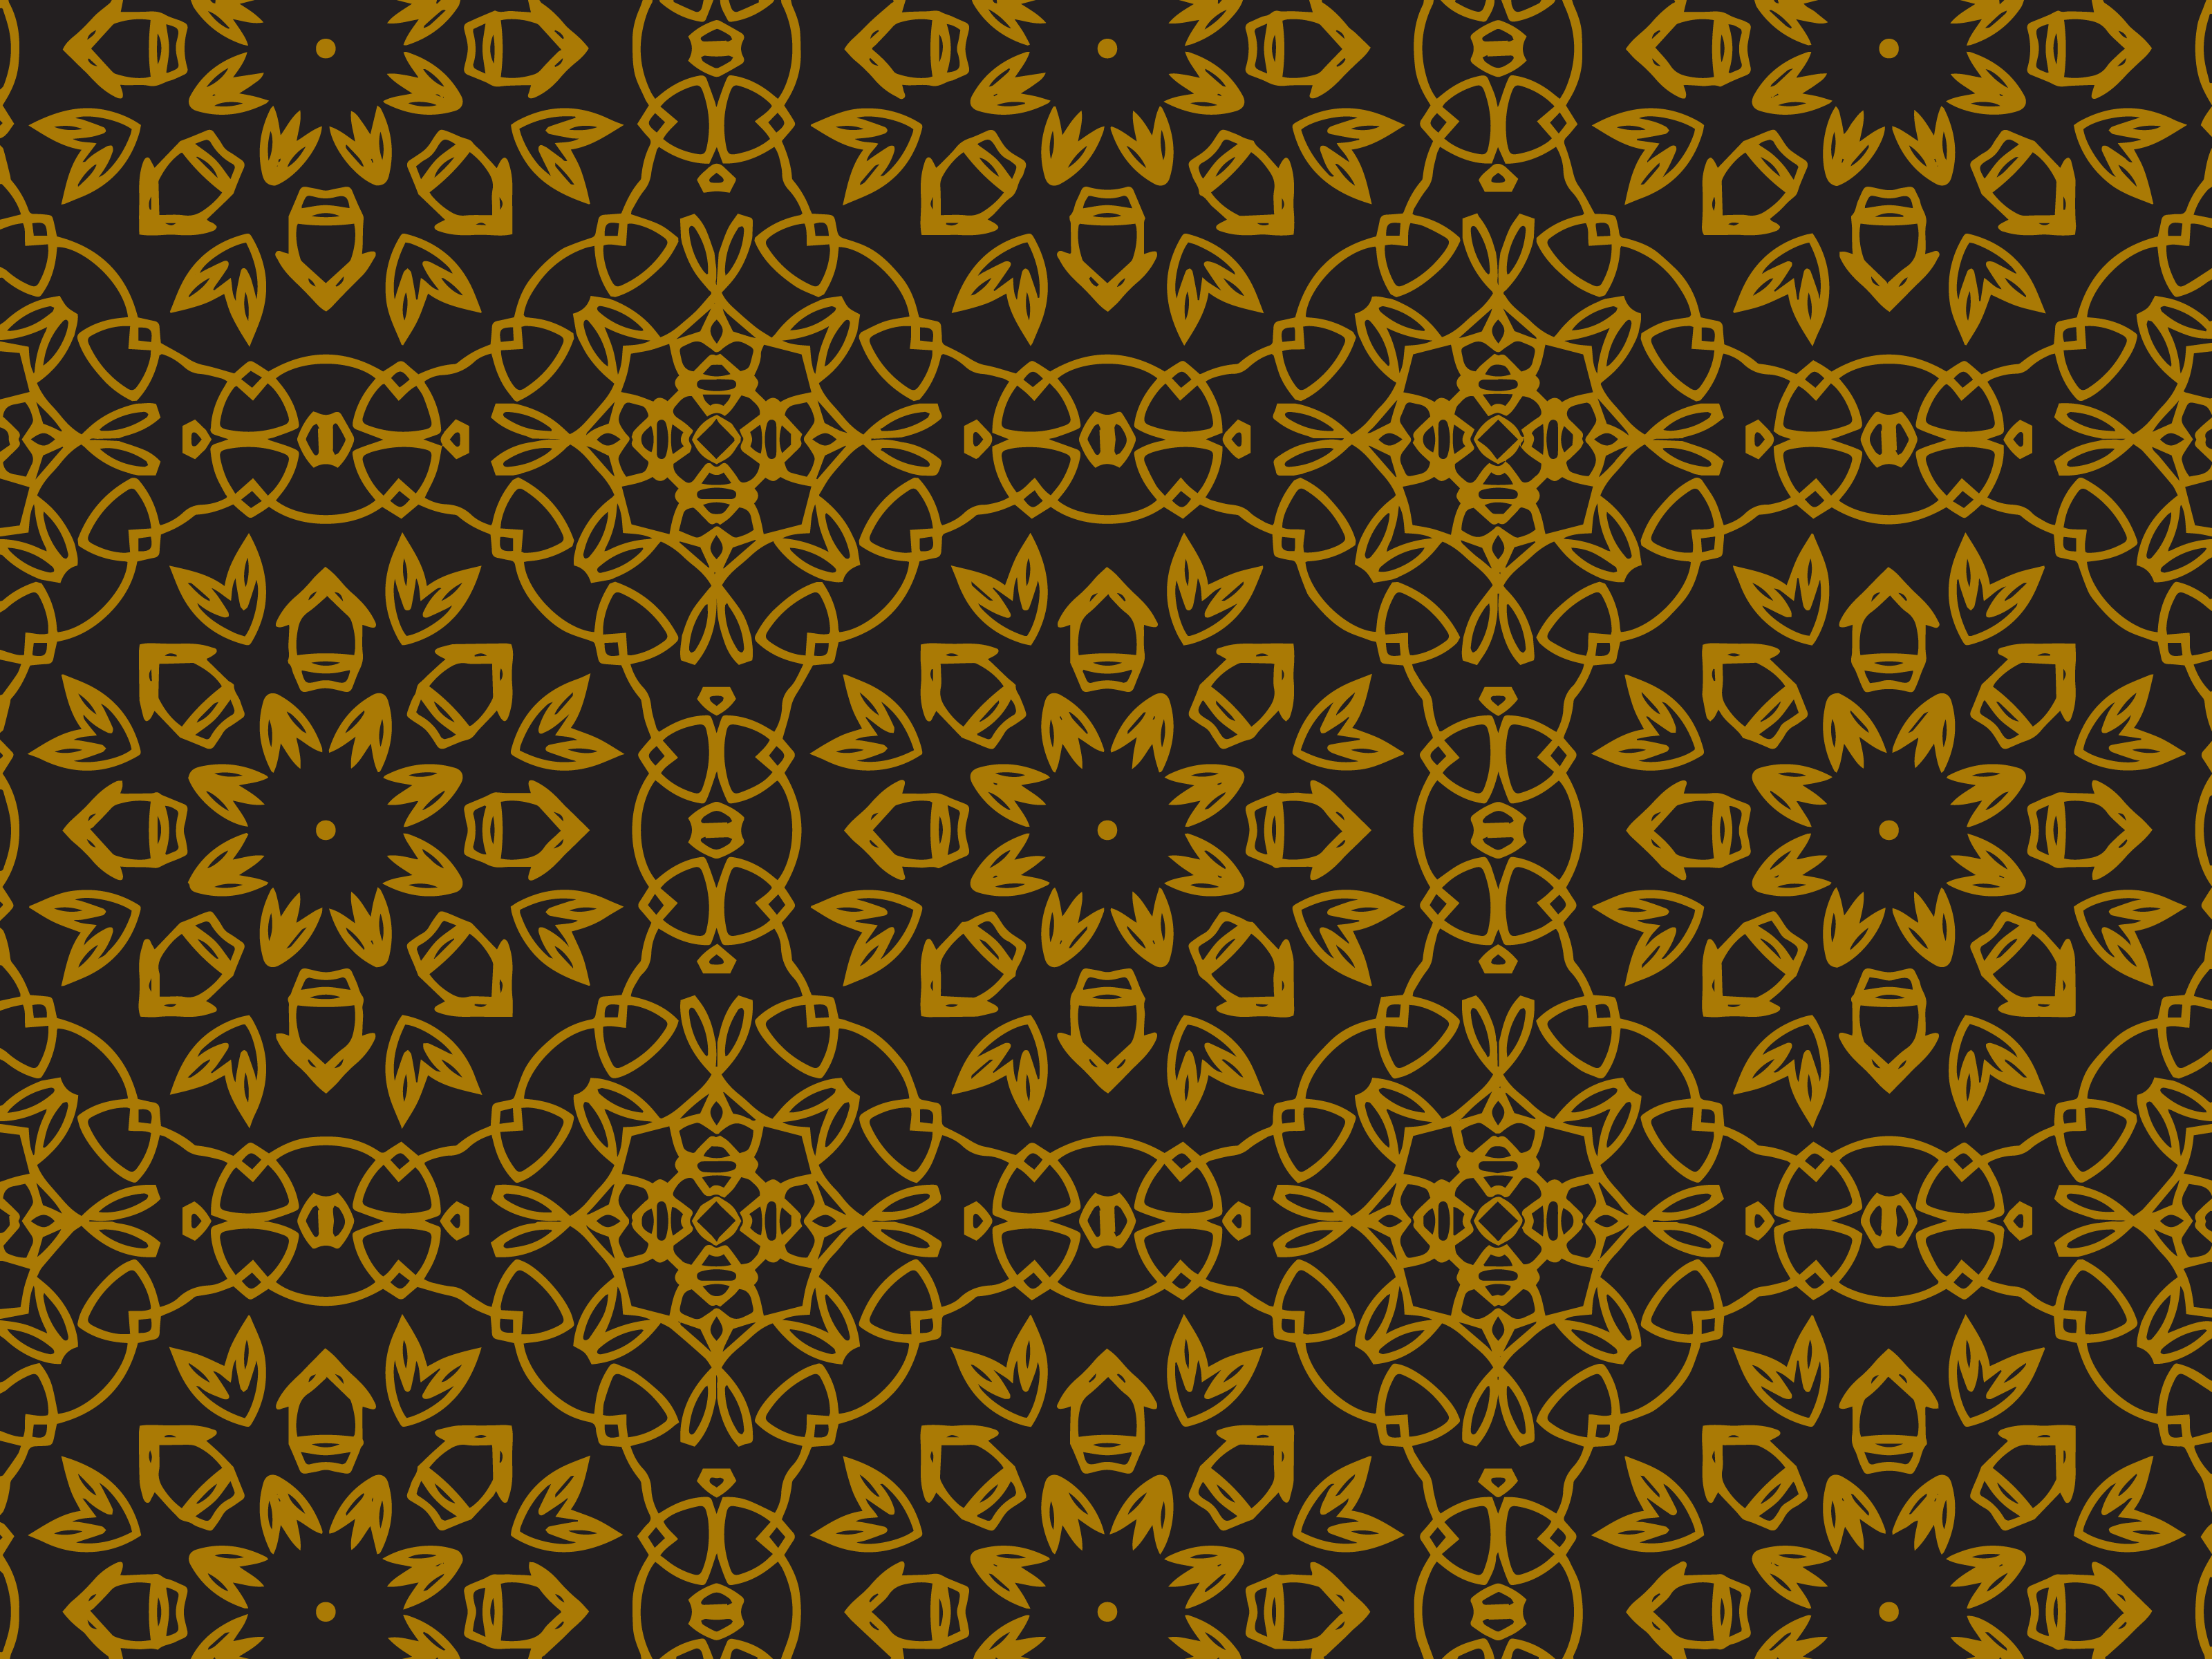 Download Free Pattern Gold Blooming Flower Graphic By Silkymilkycreative for Cricut Explore, Silhouette and other cutting machines.